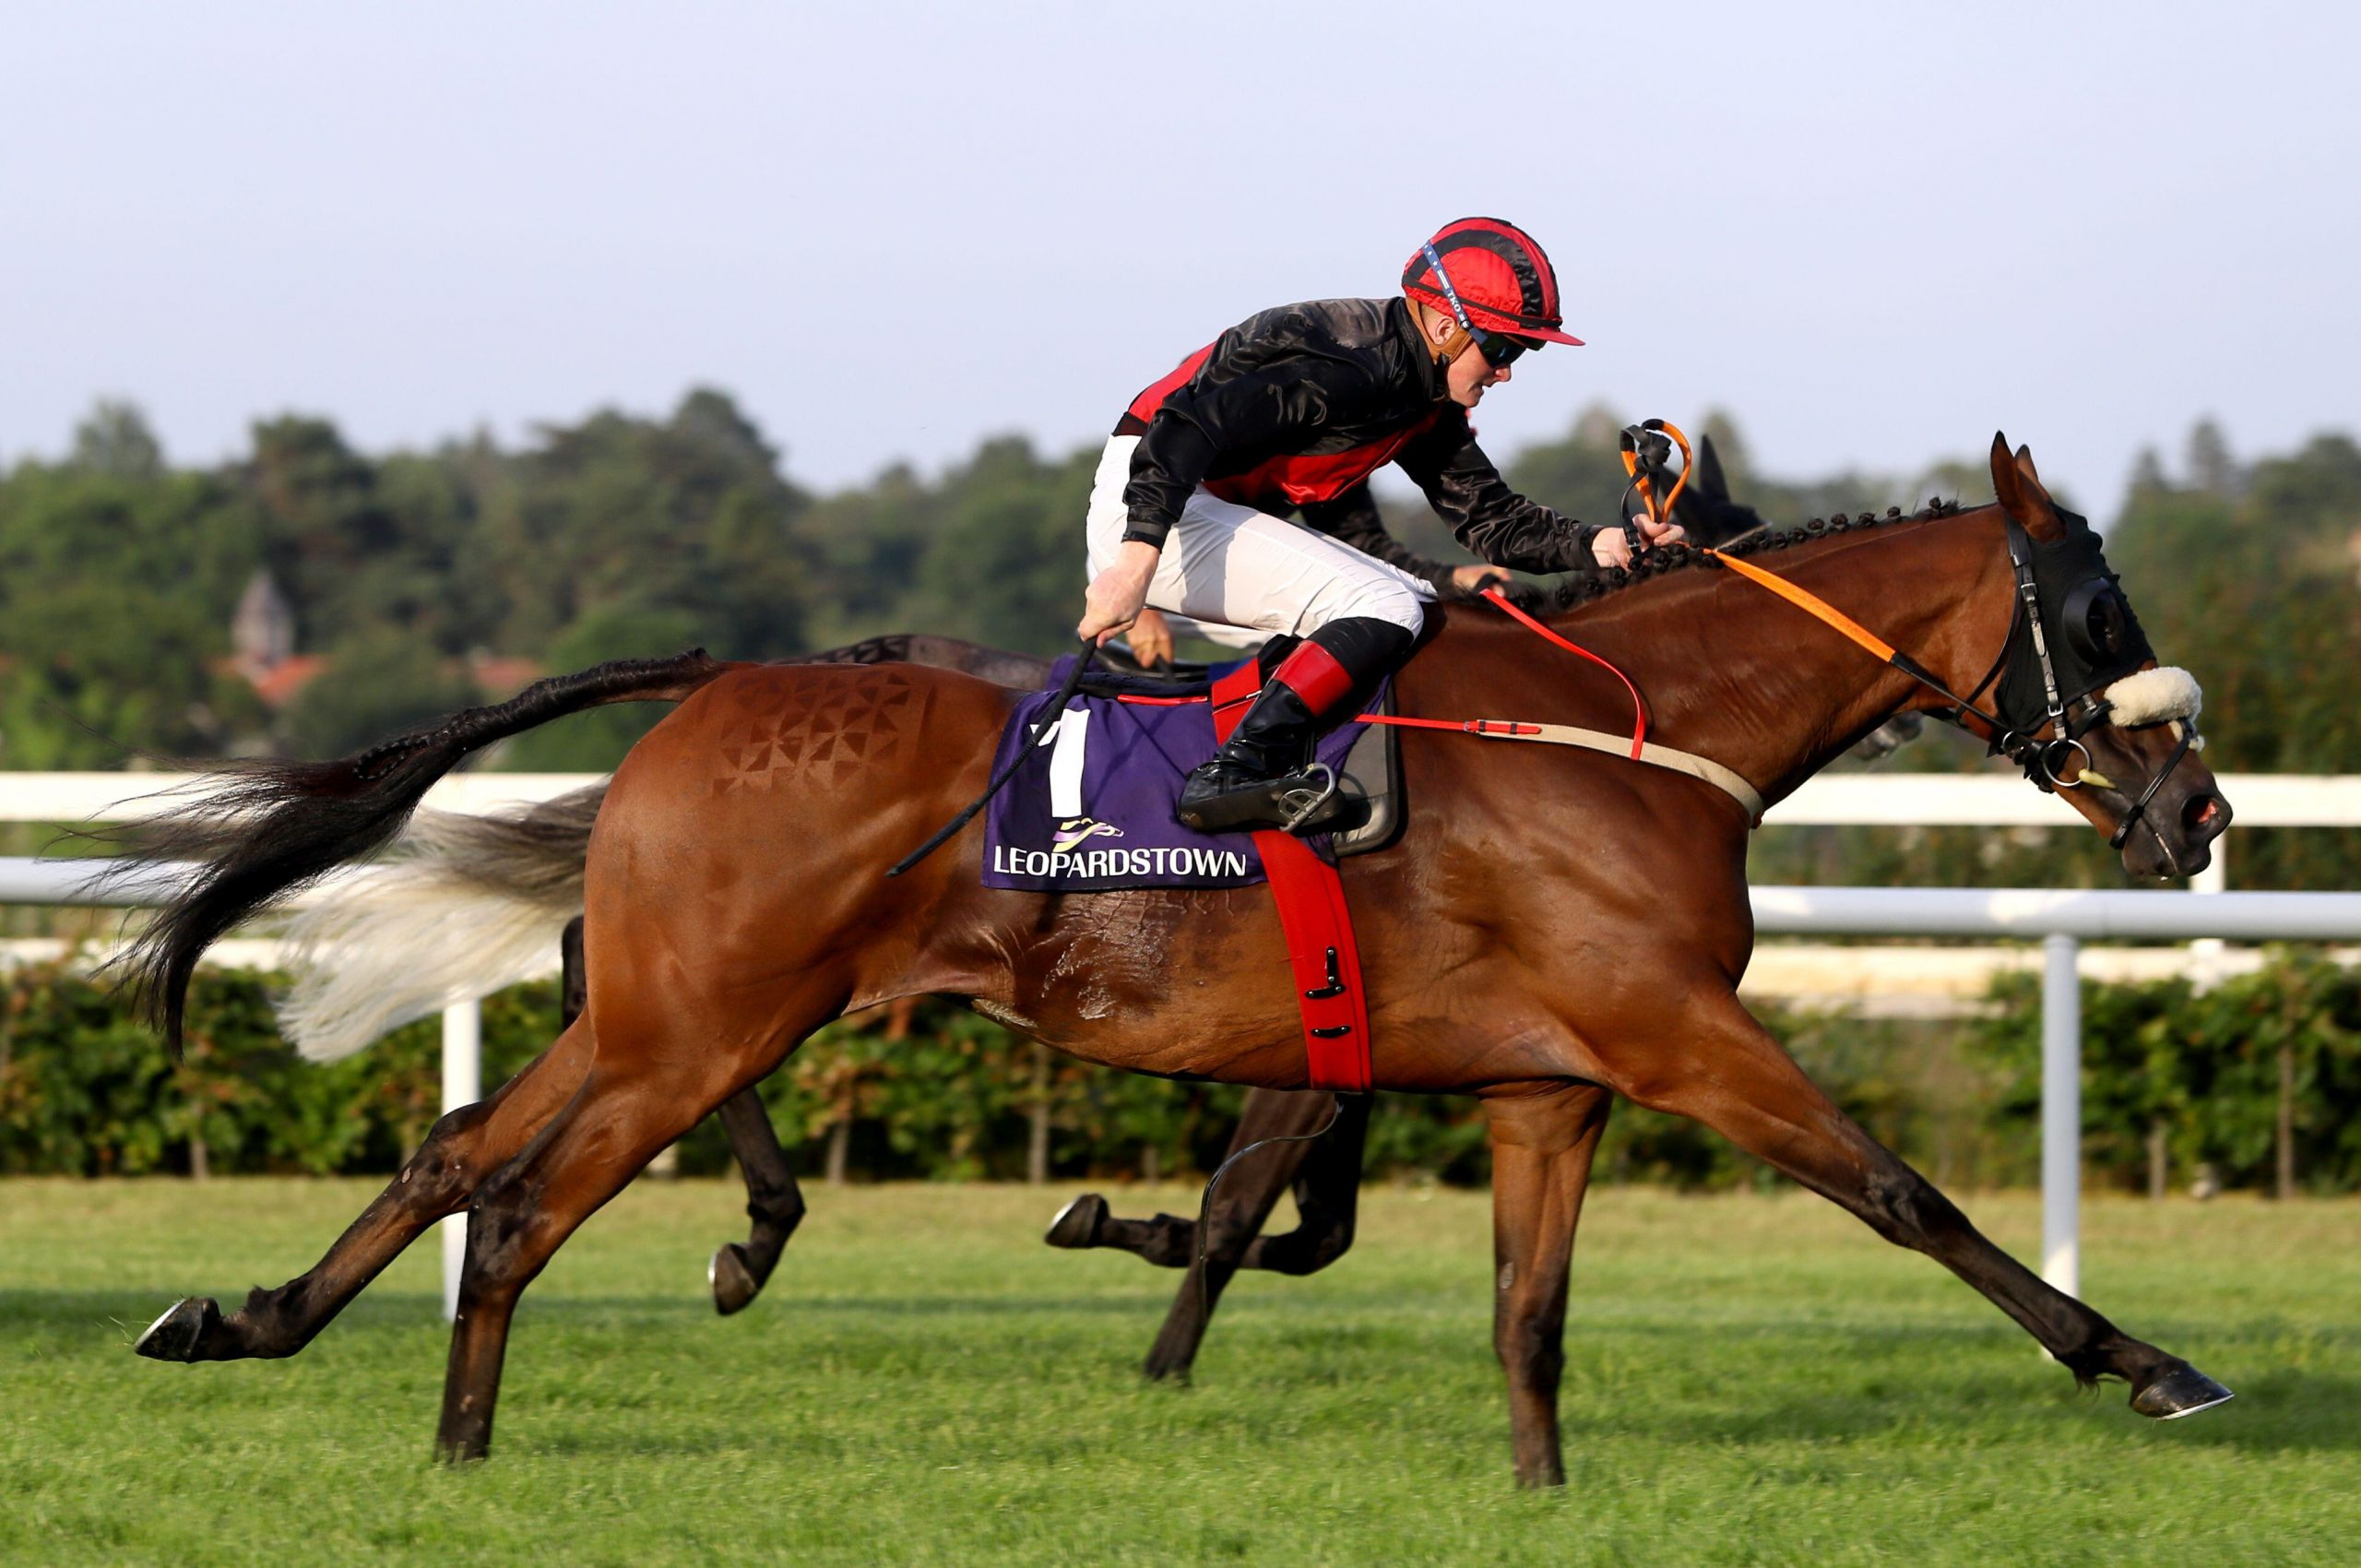 2G8RYA3 Peregrine Run ridden by Sam Ewing on their way to winning the Horseraces S.A. Of Greece Handicap at Leopardstown Racecourse in Dublin, Ireland. Picture date: Thursday July 22, 2021.